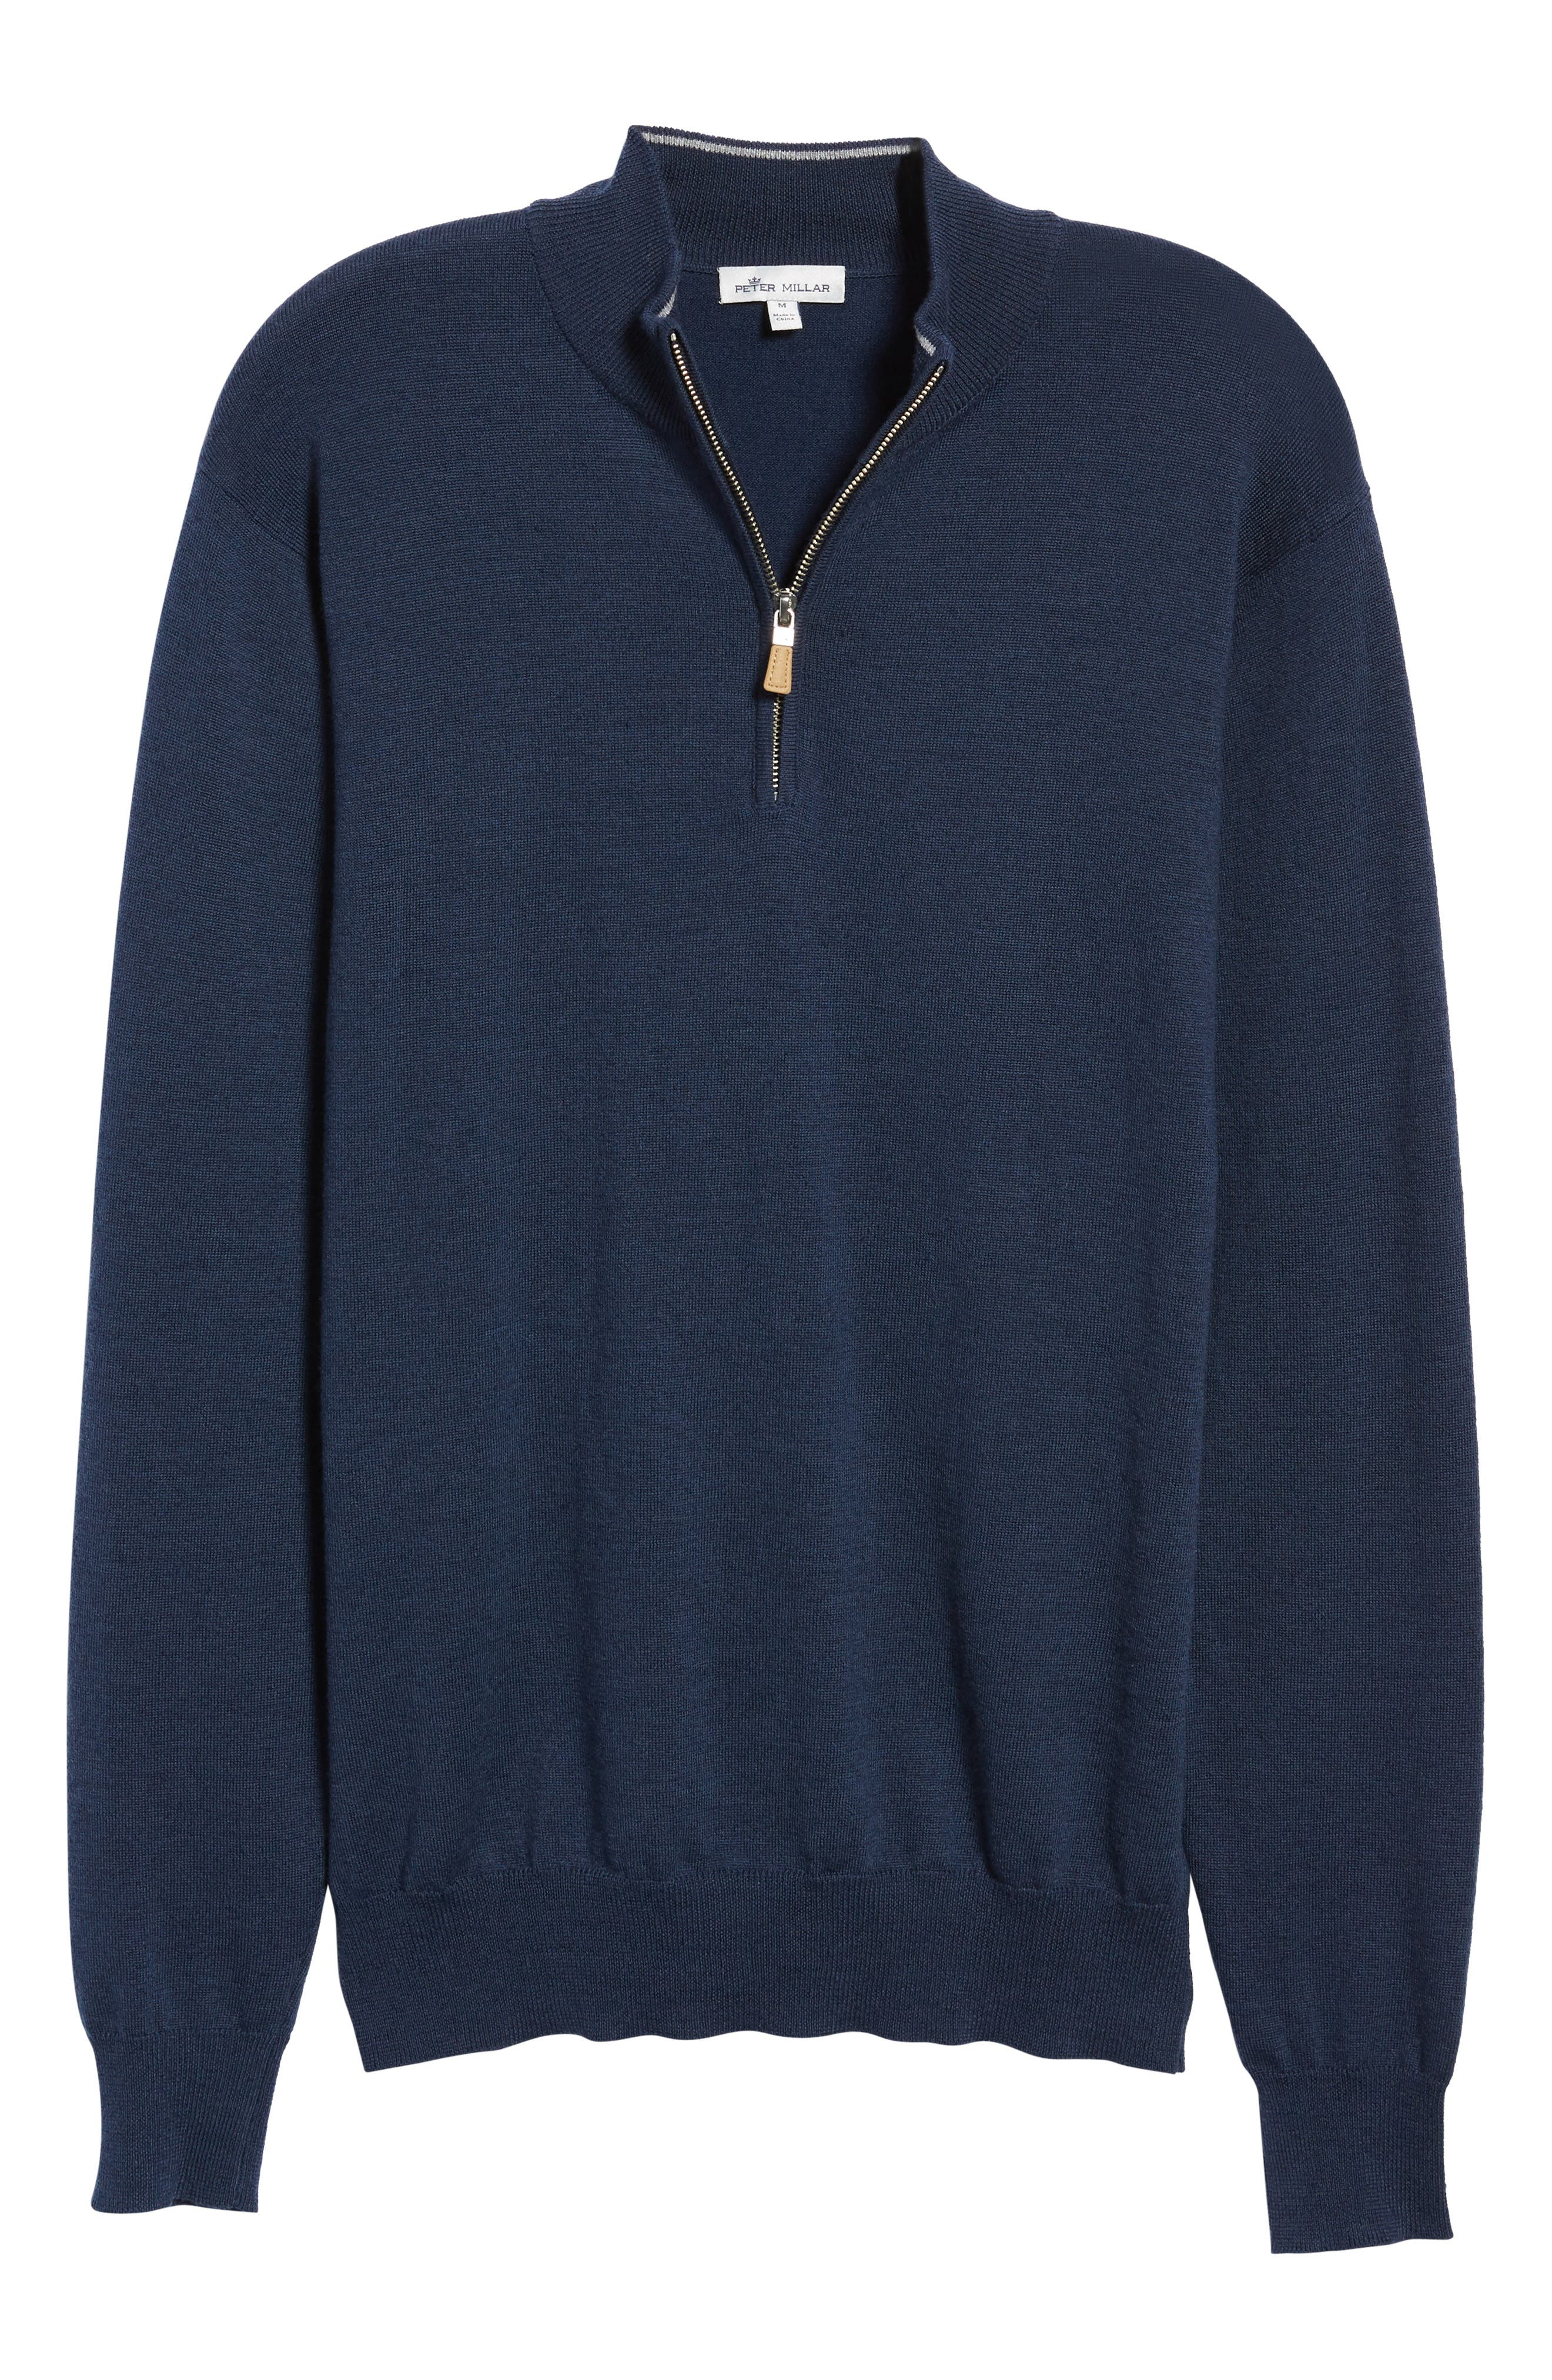 PETER MILLAR,                             Regular Fit Half Zip Wool & Linen Pullover,                             Alternate thumbnail 6, color,                             410